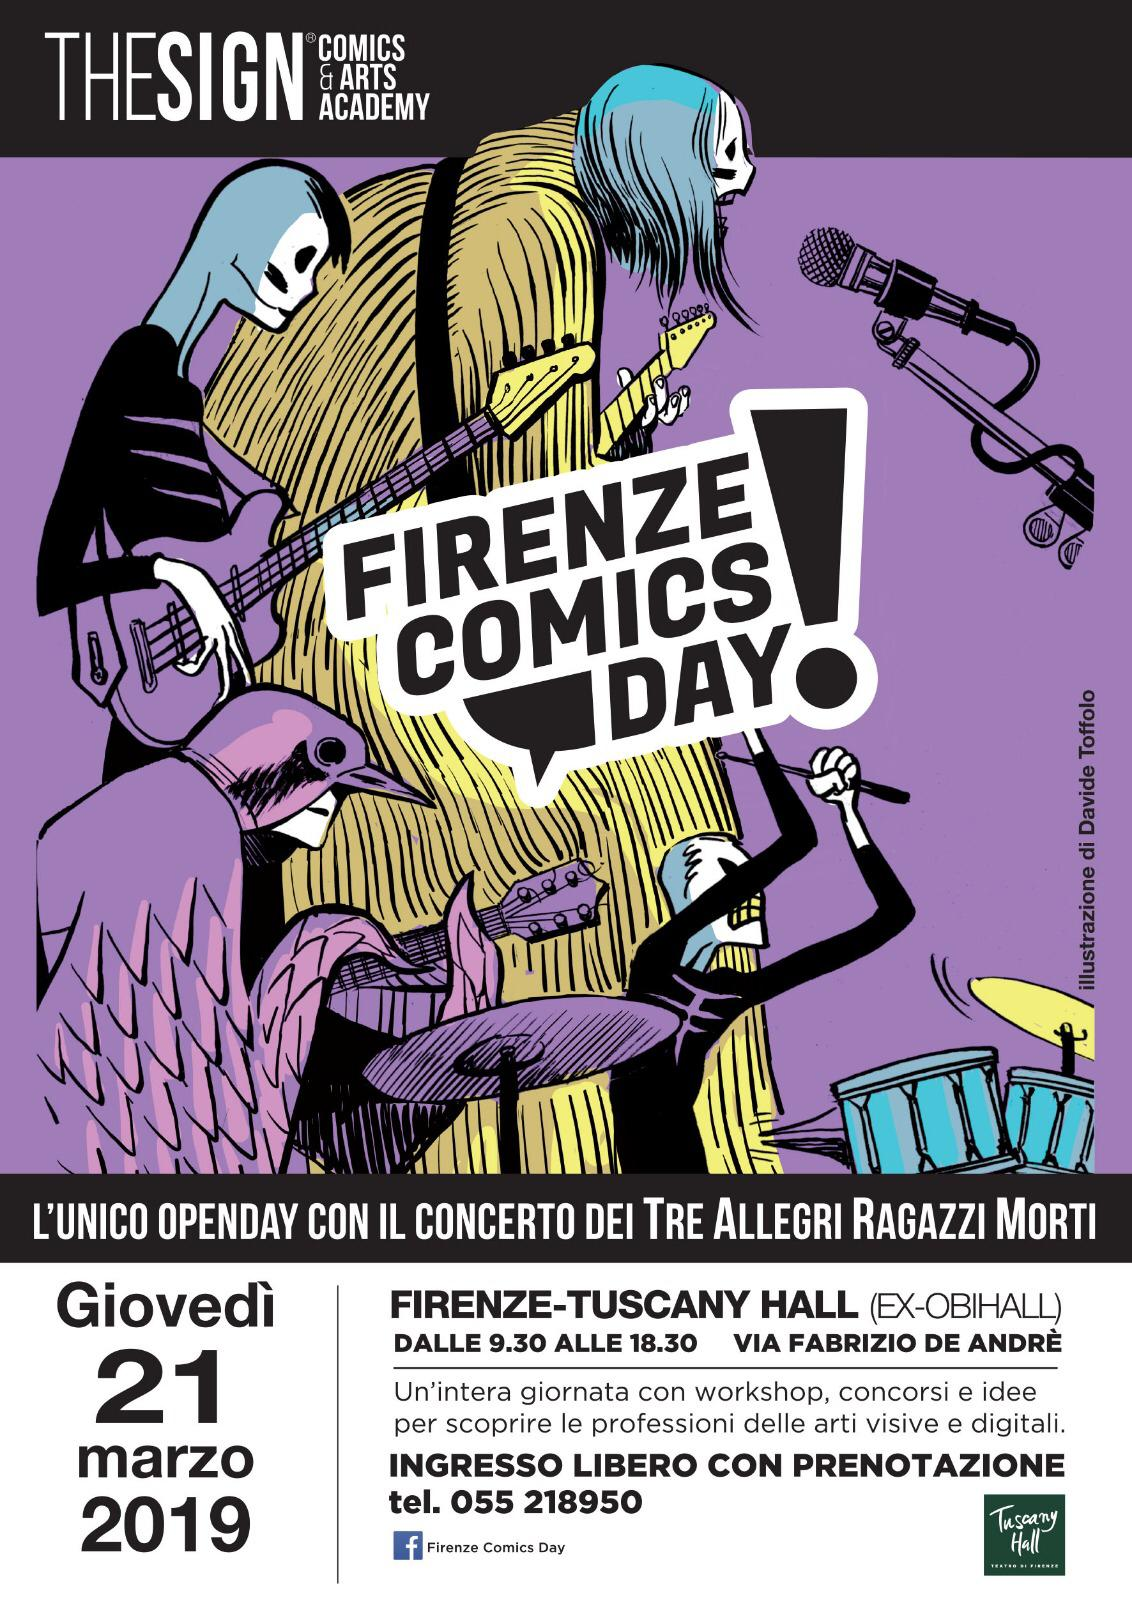 Firenze Comics Day 2019